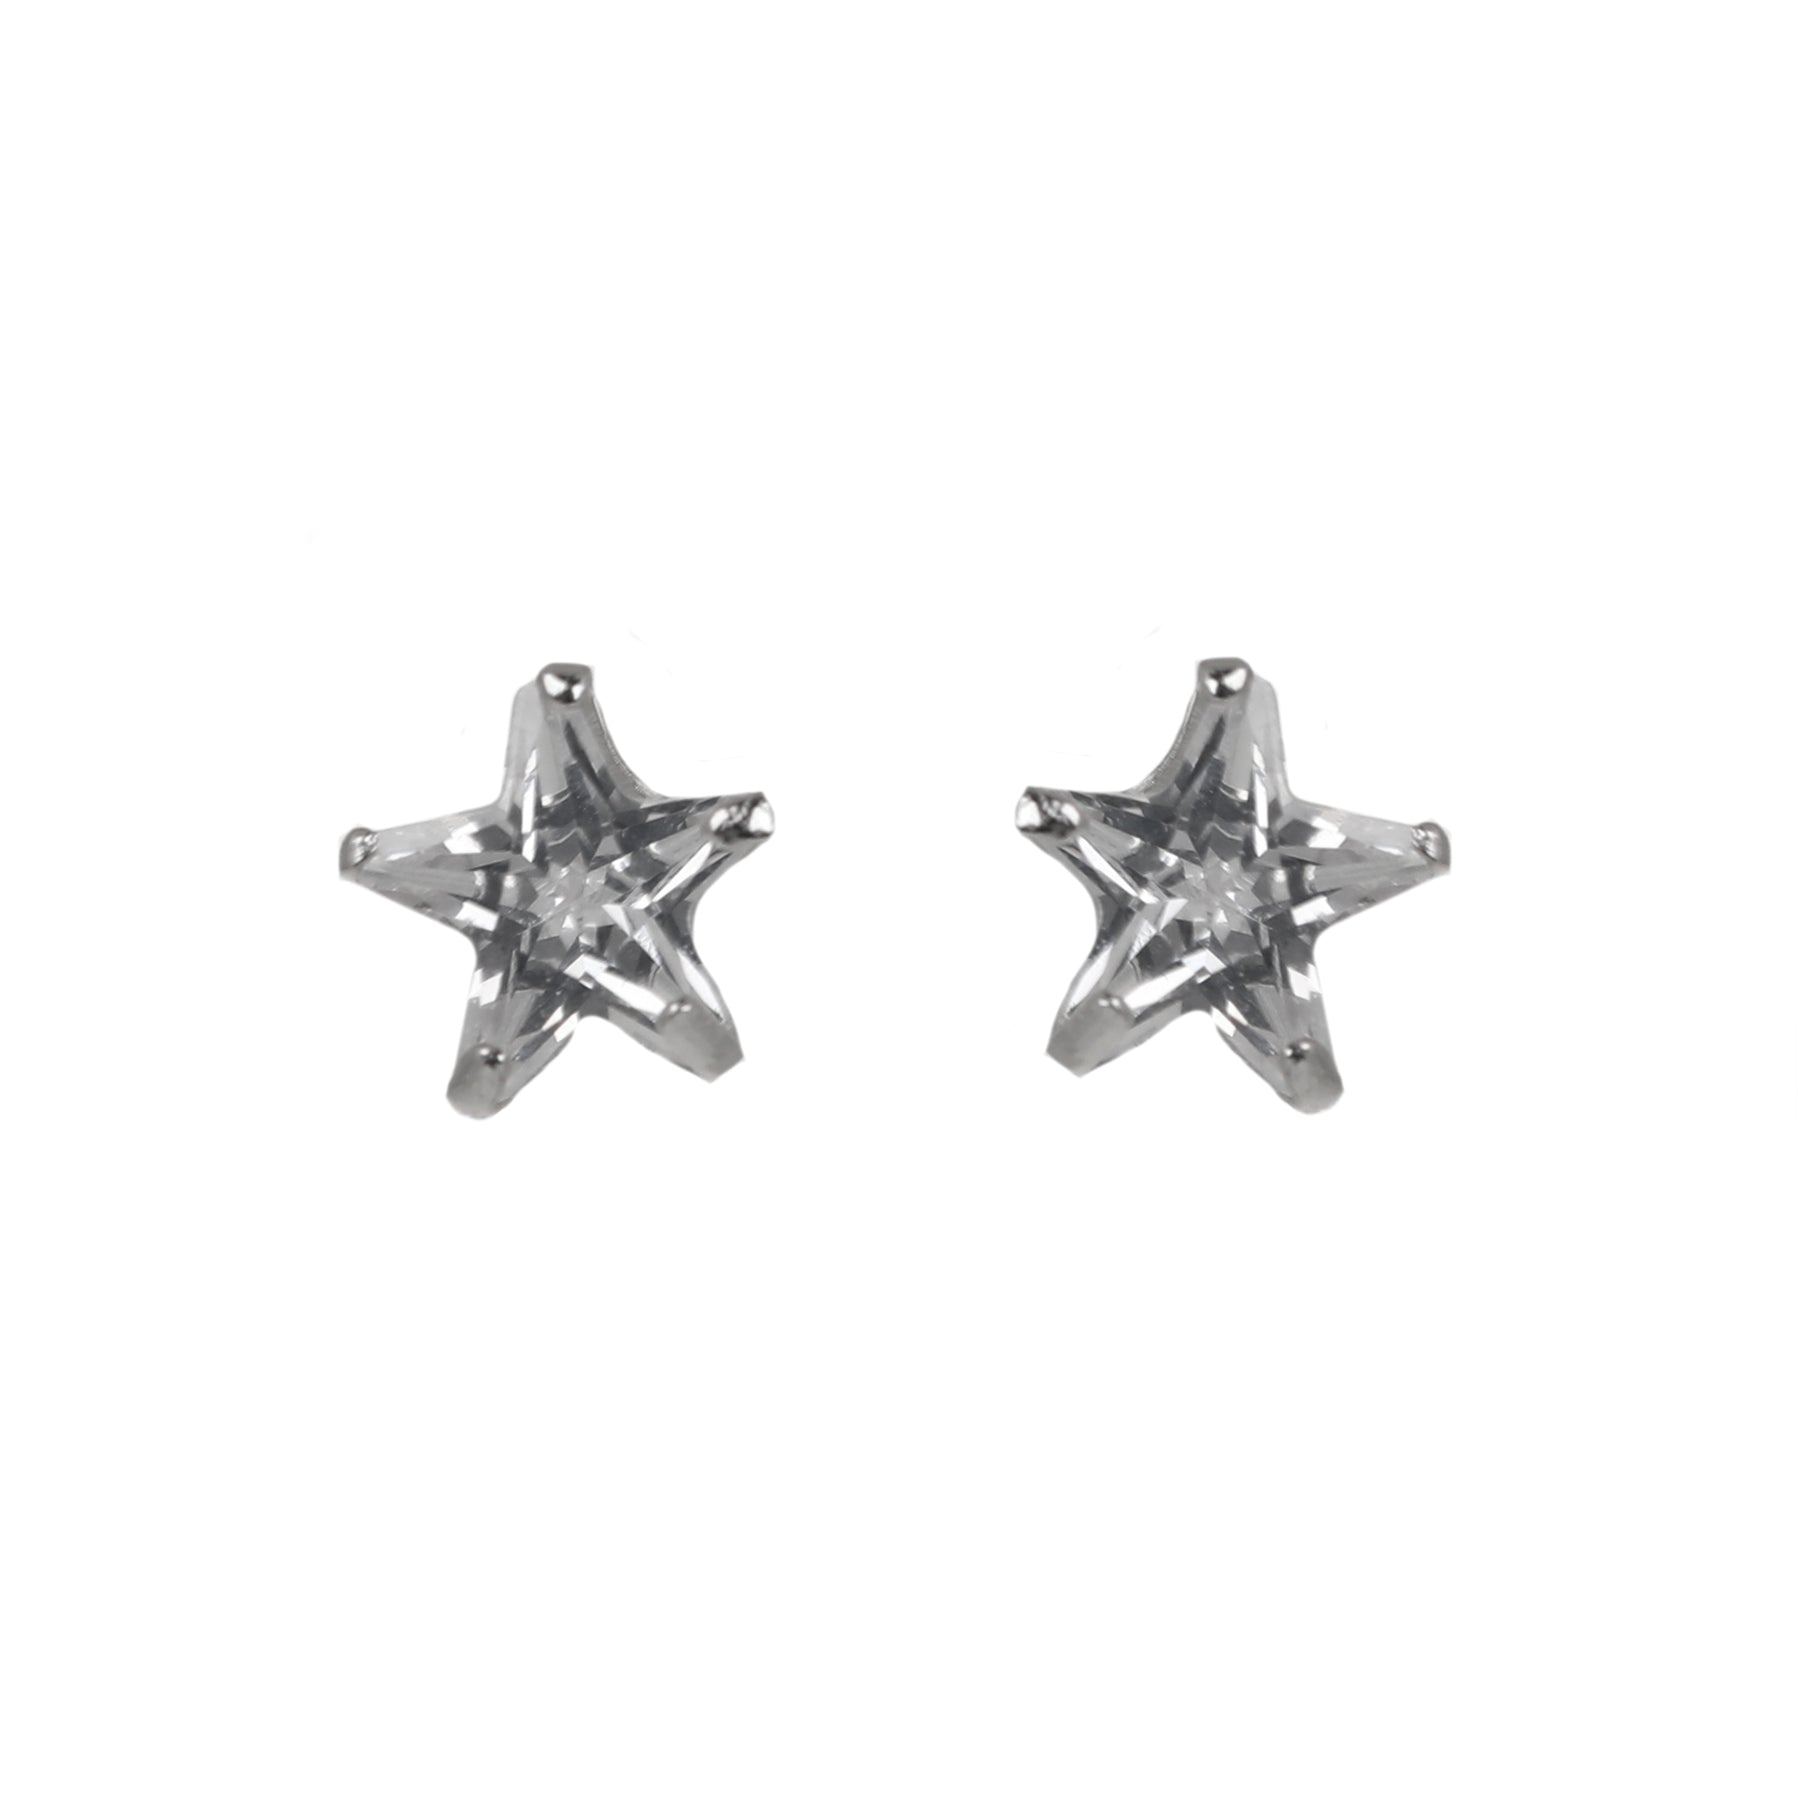 Dainty Star Shaped Sterling Silver Stud Earrings